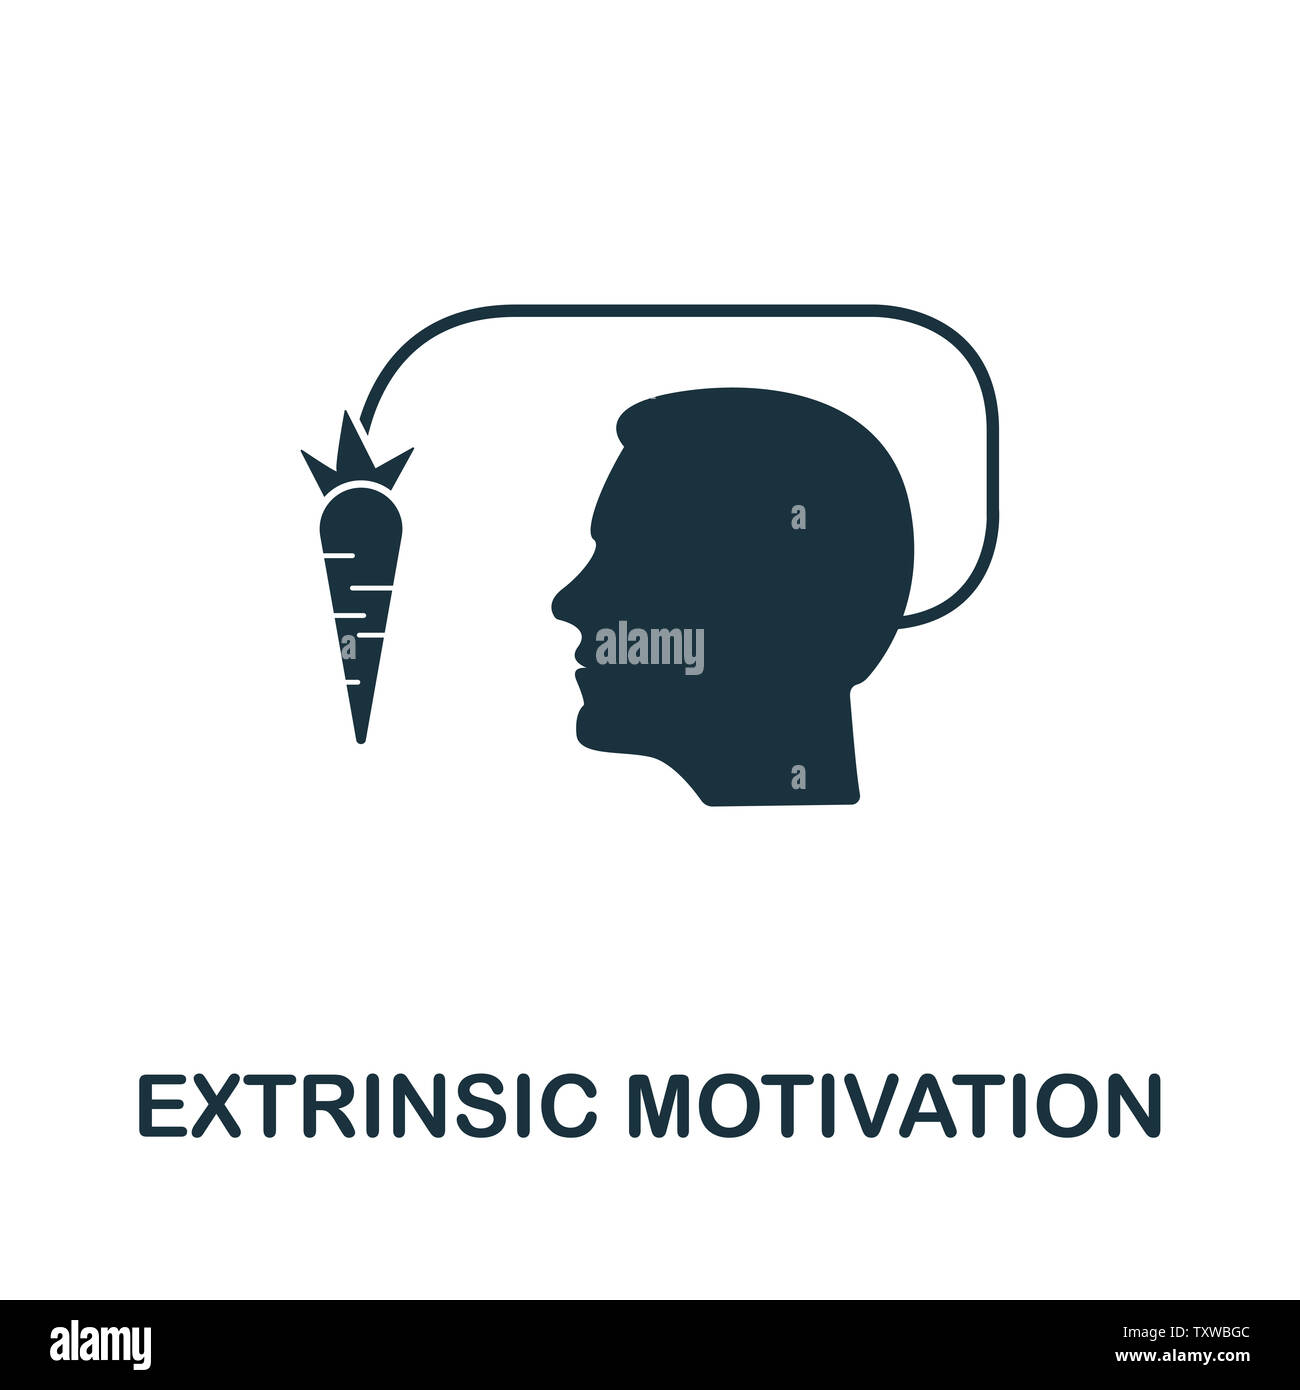 Extrinsic Motivation icon illustration. Creative sign from gamification icons collection. Filled flat Extrinsic Motivation icon for computer and mobil Stock Photo